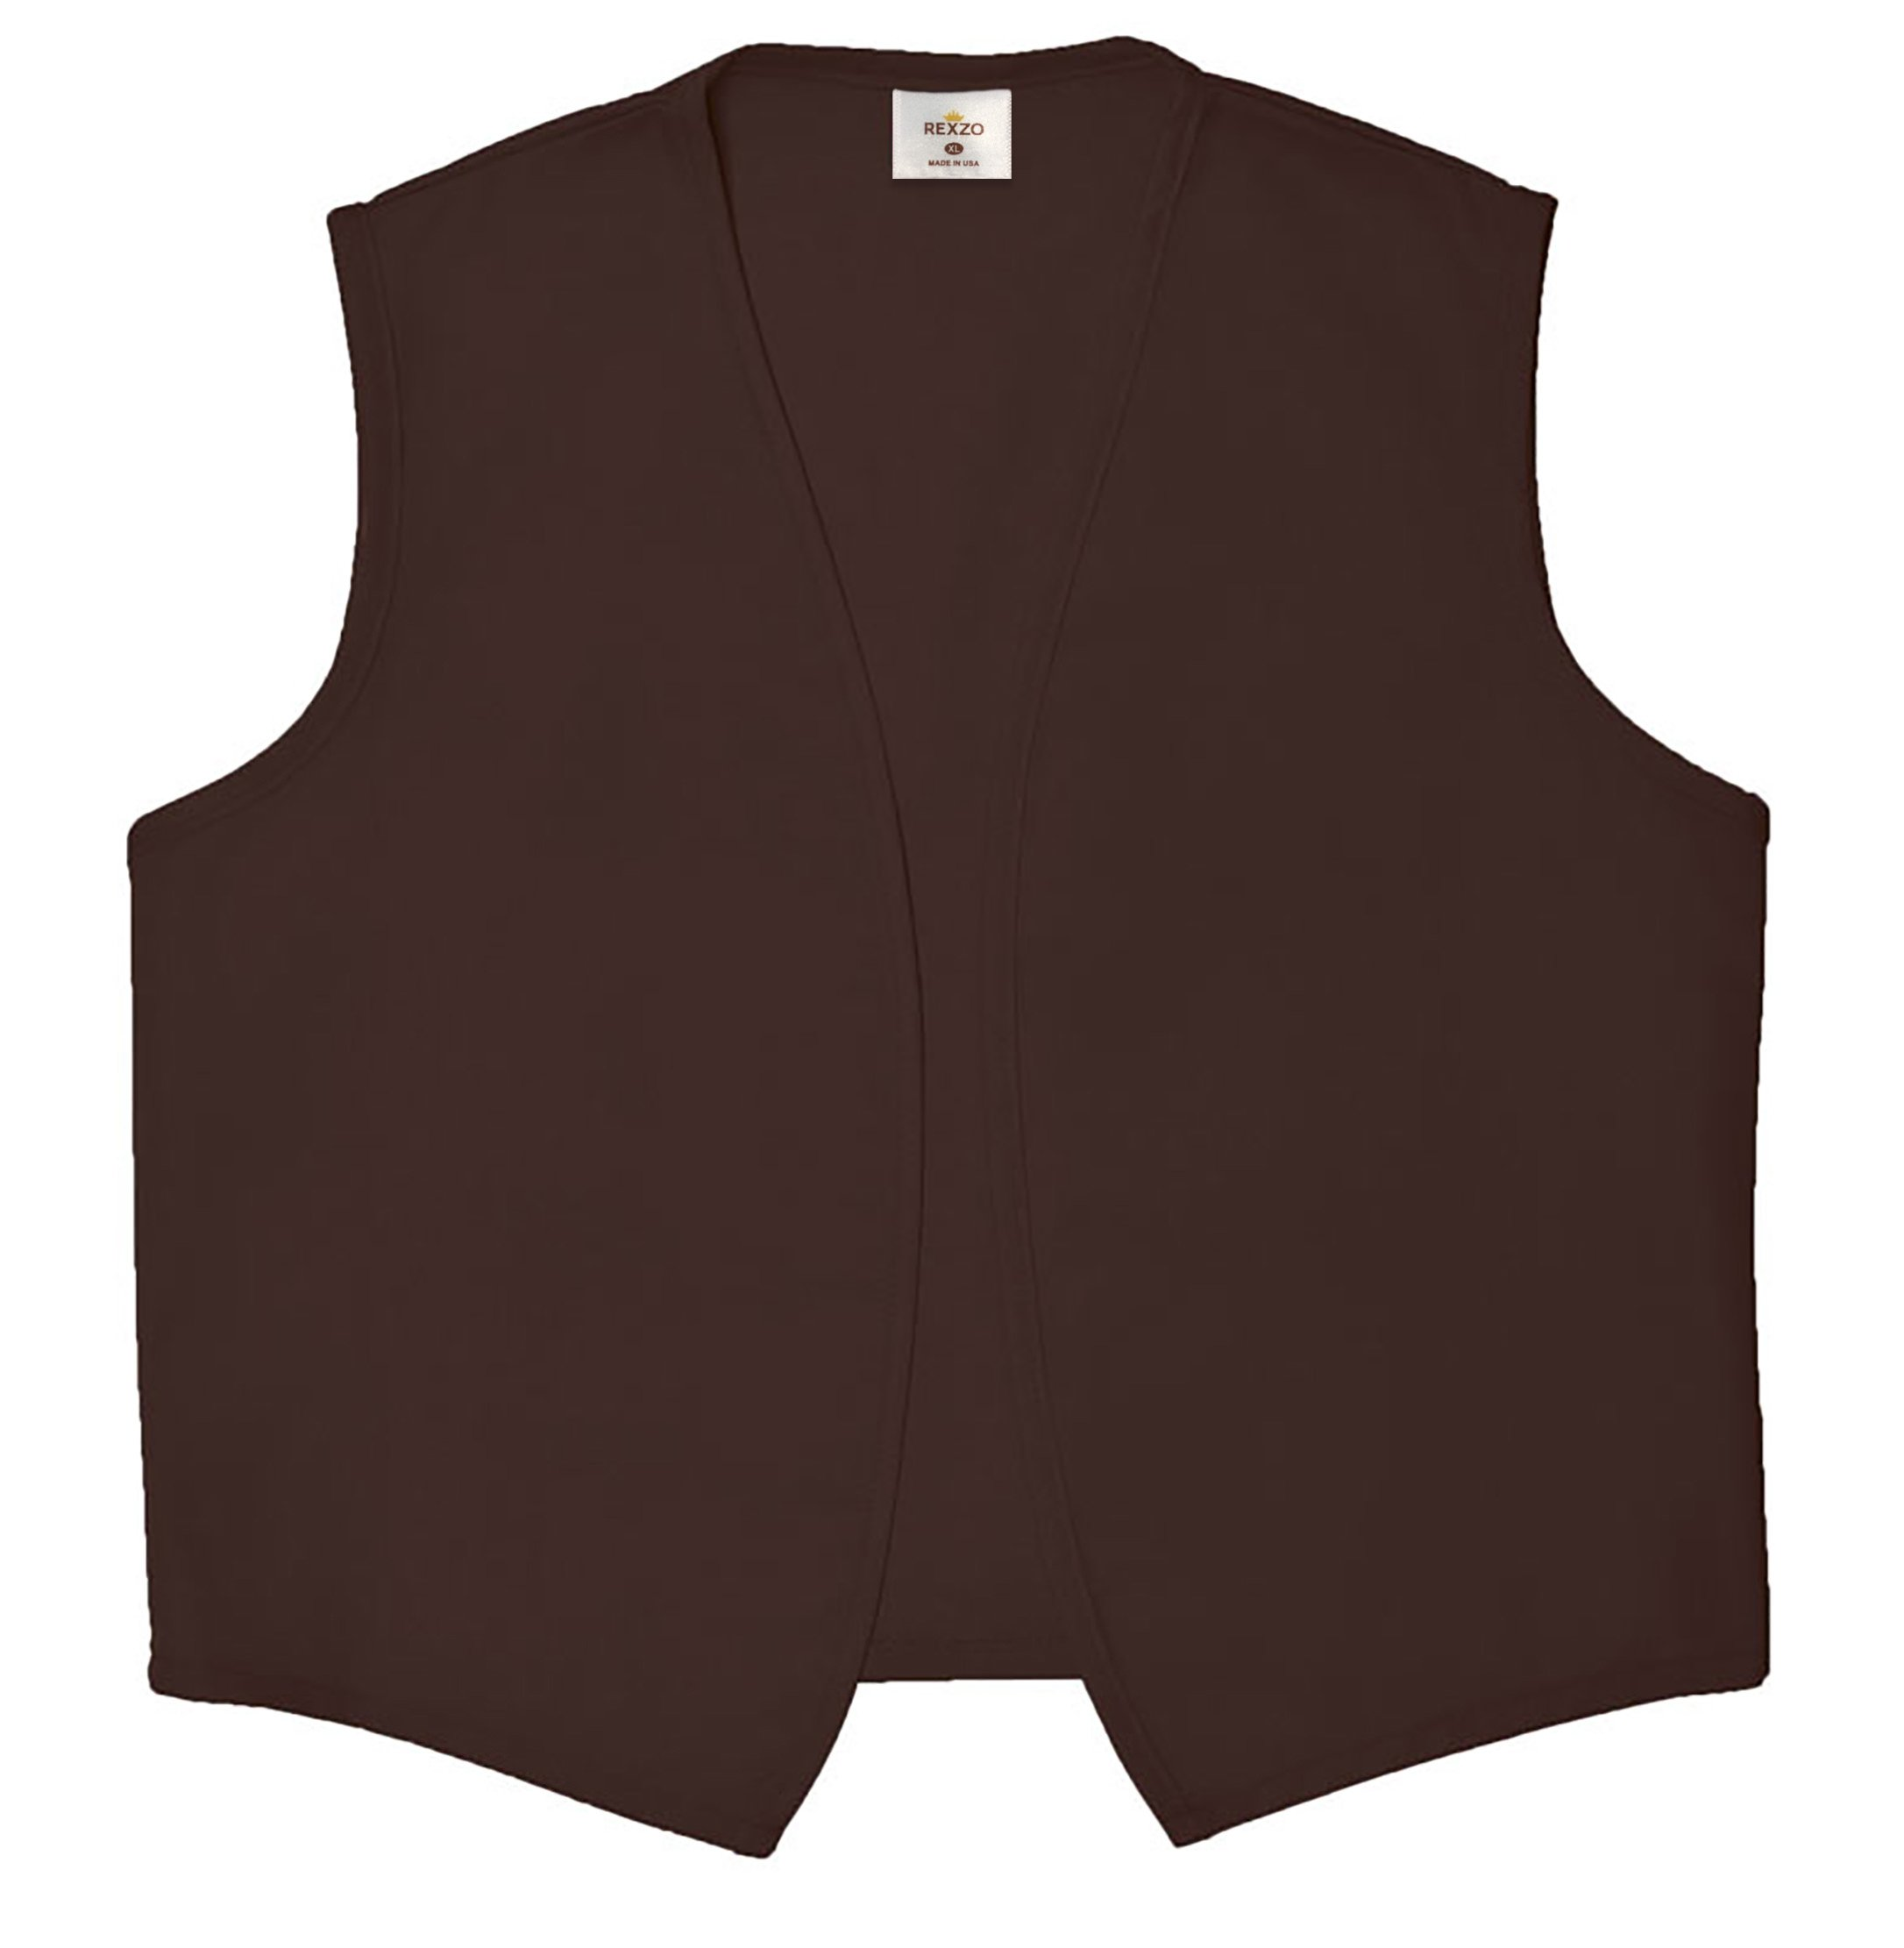 REXZO Unisex Vest No Pocket No Buttons– Made in The USA - Brown, Small